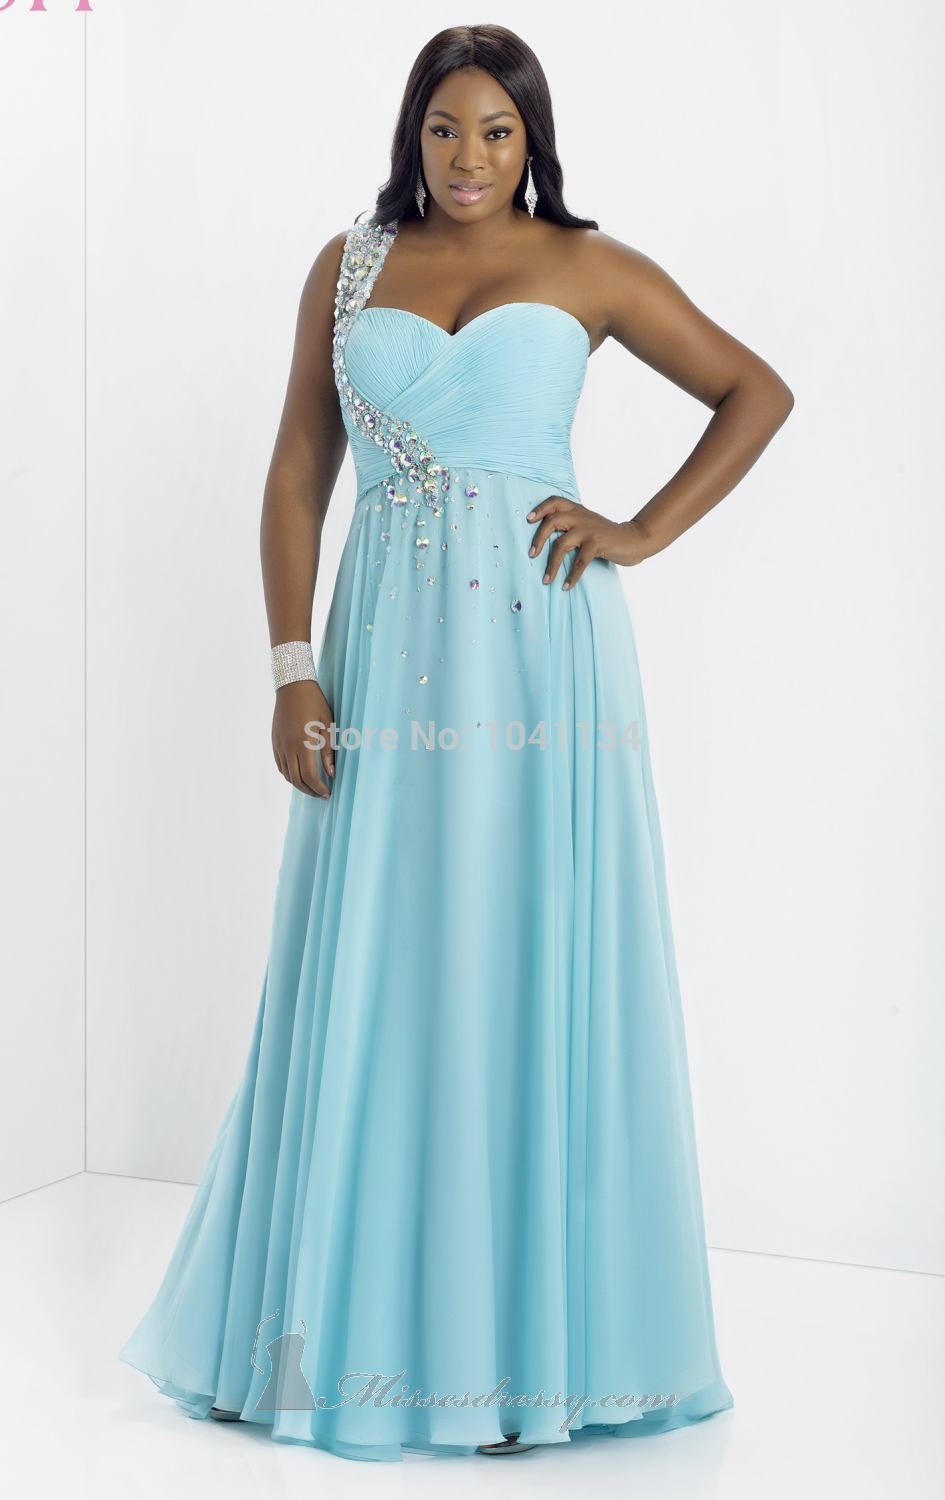 Sexy Turquoise Prom Dresses - Long Dresses Online